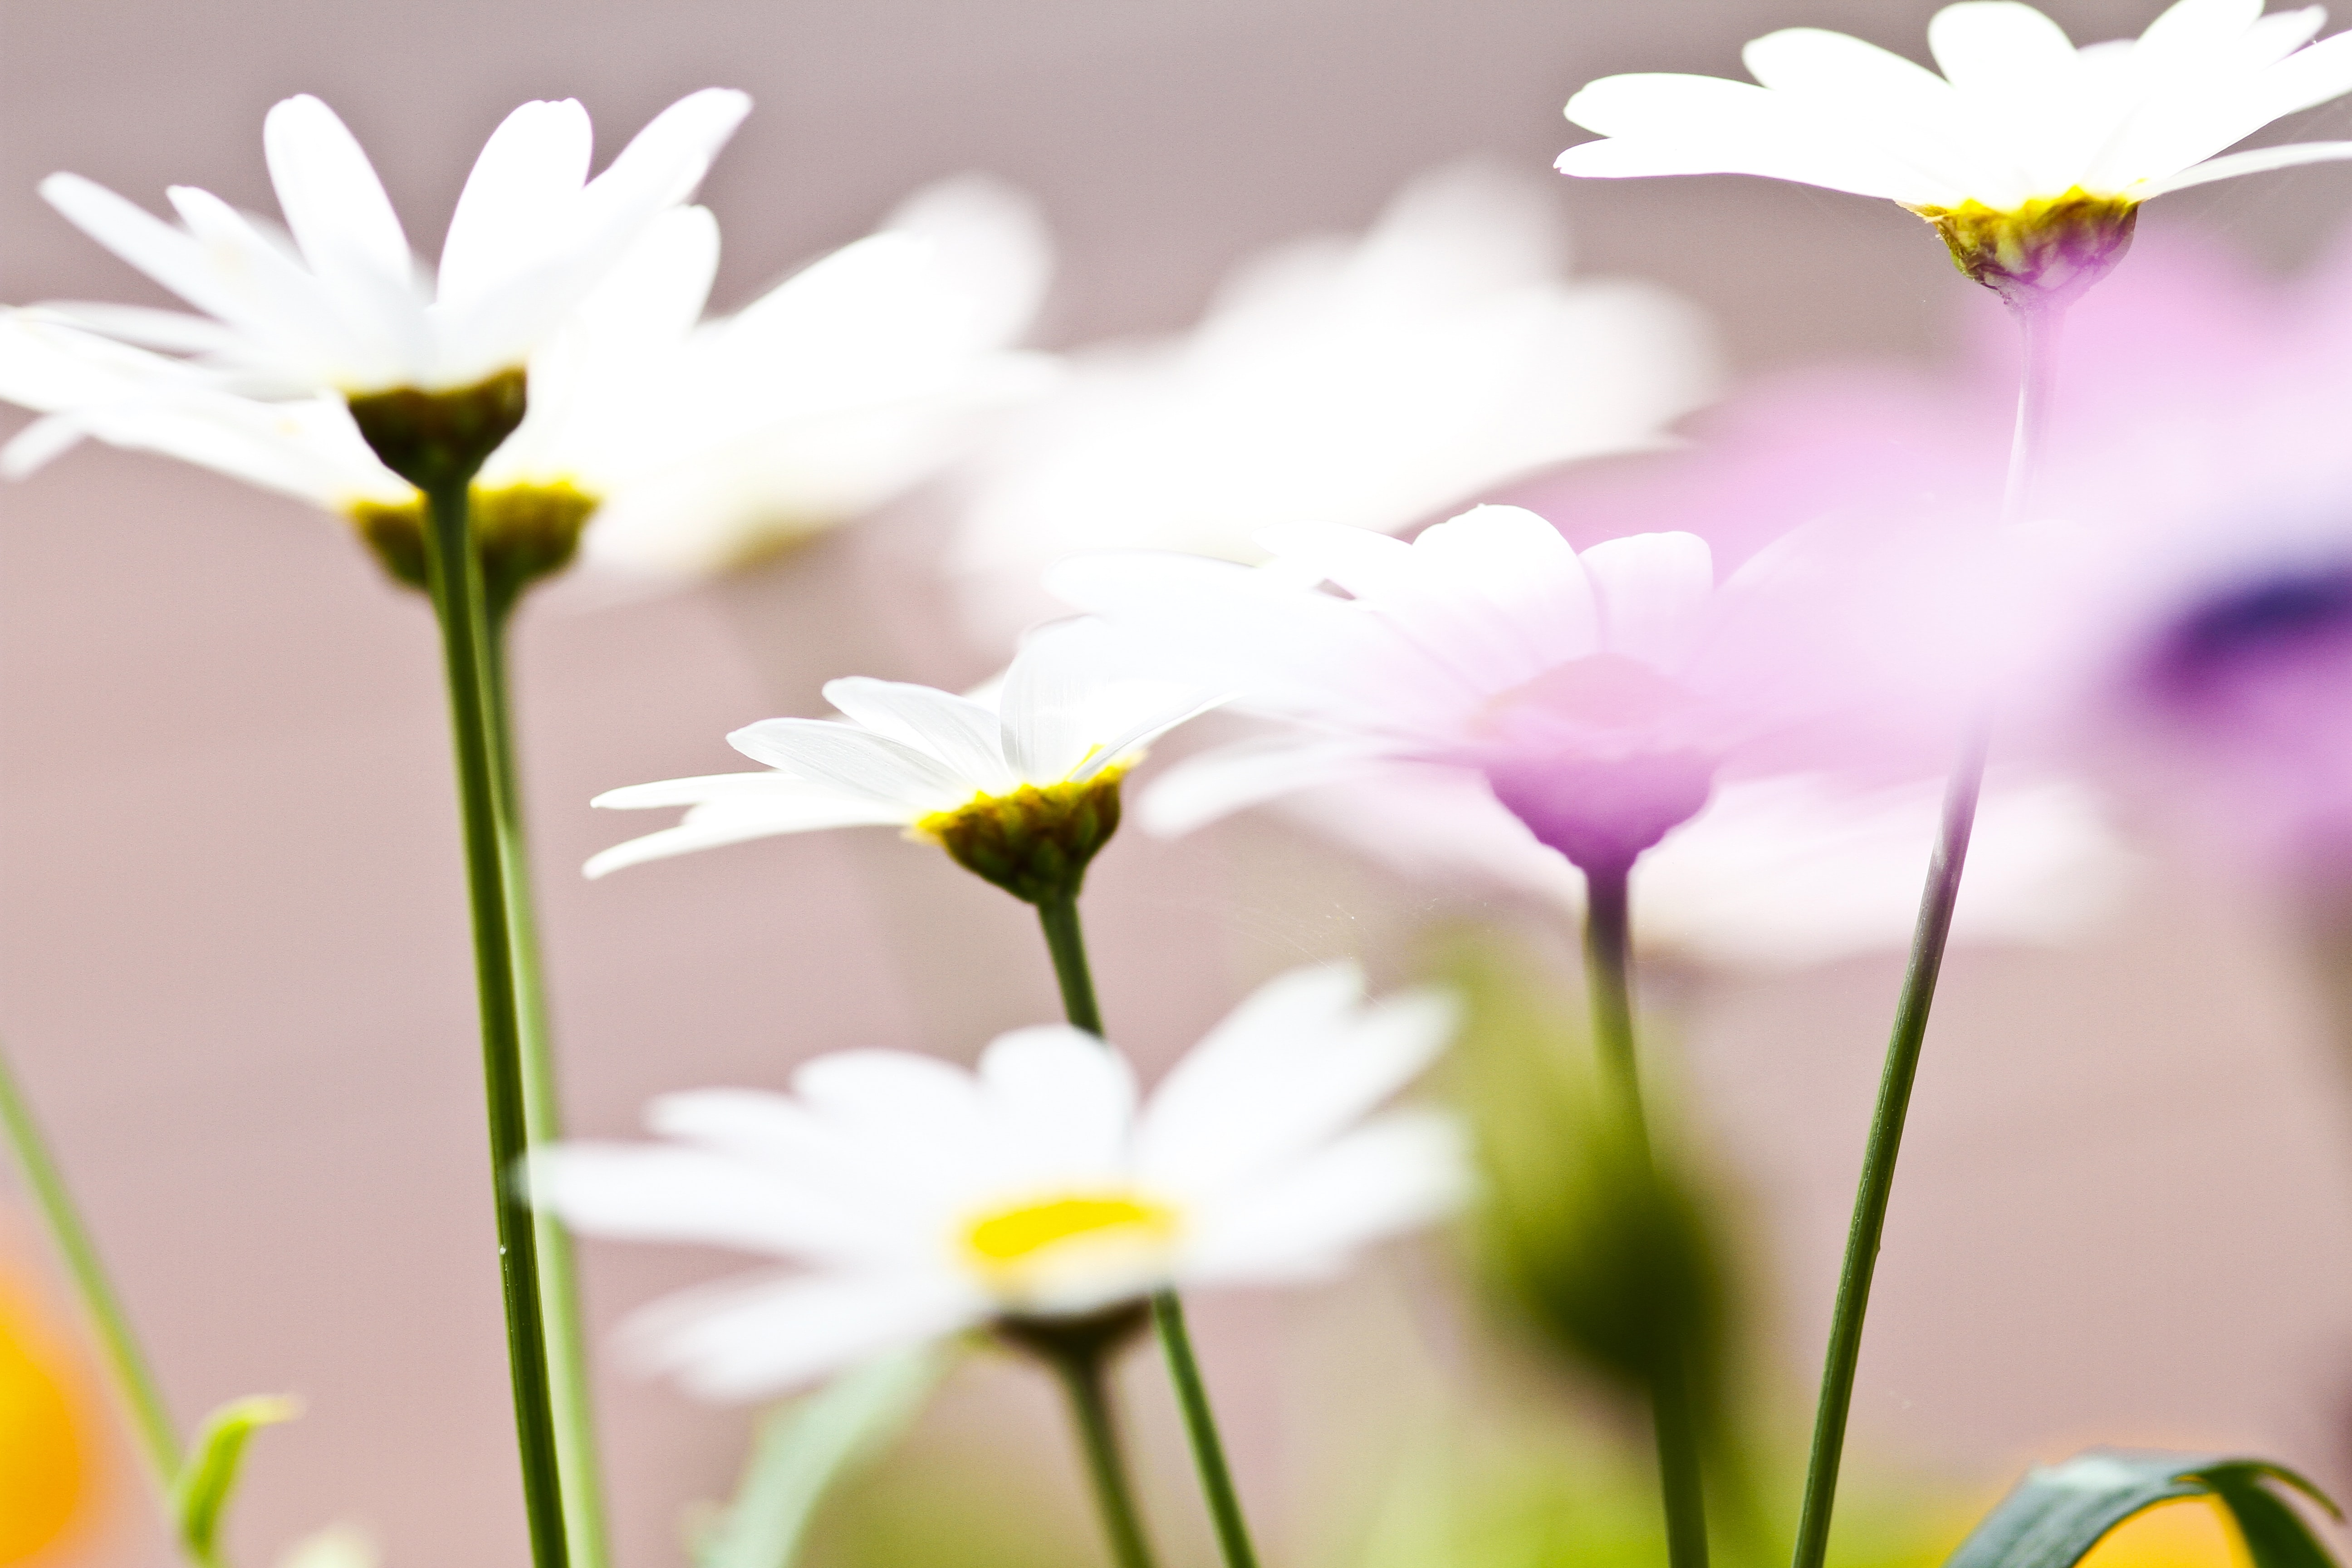 A low-angle shot of several white daisies